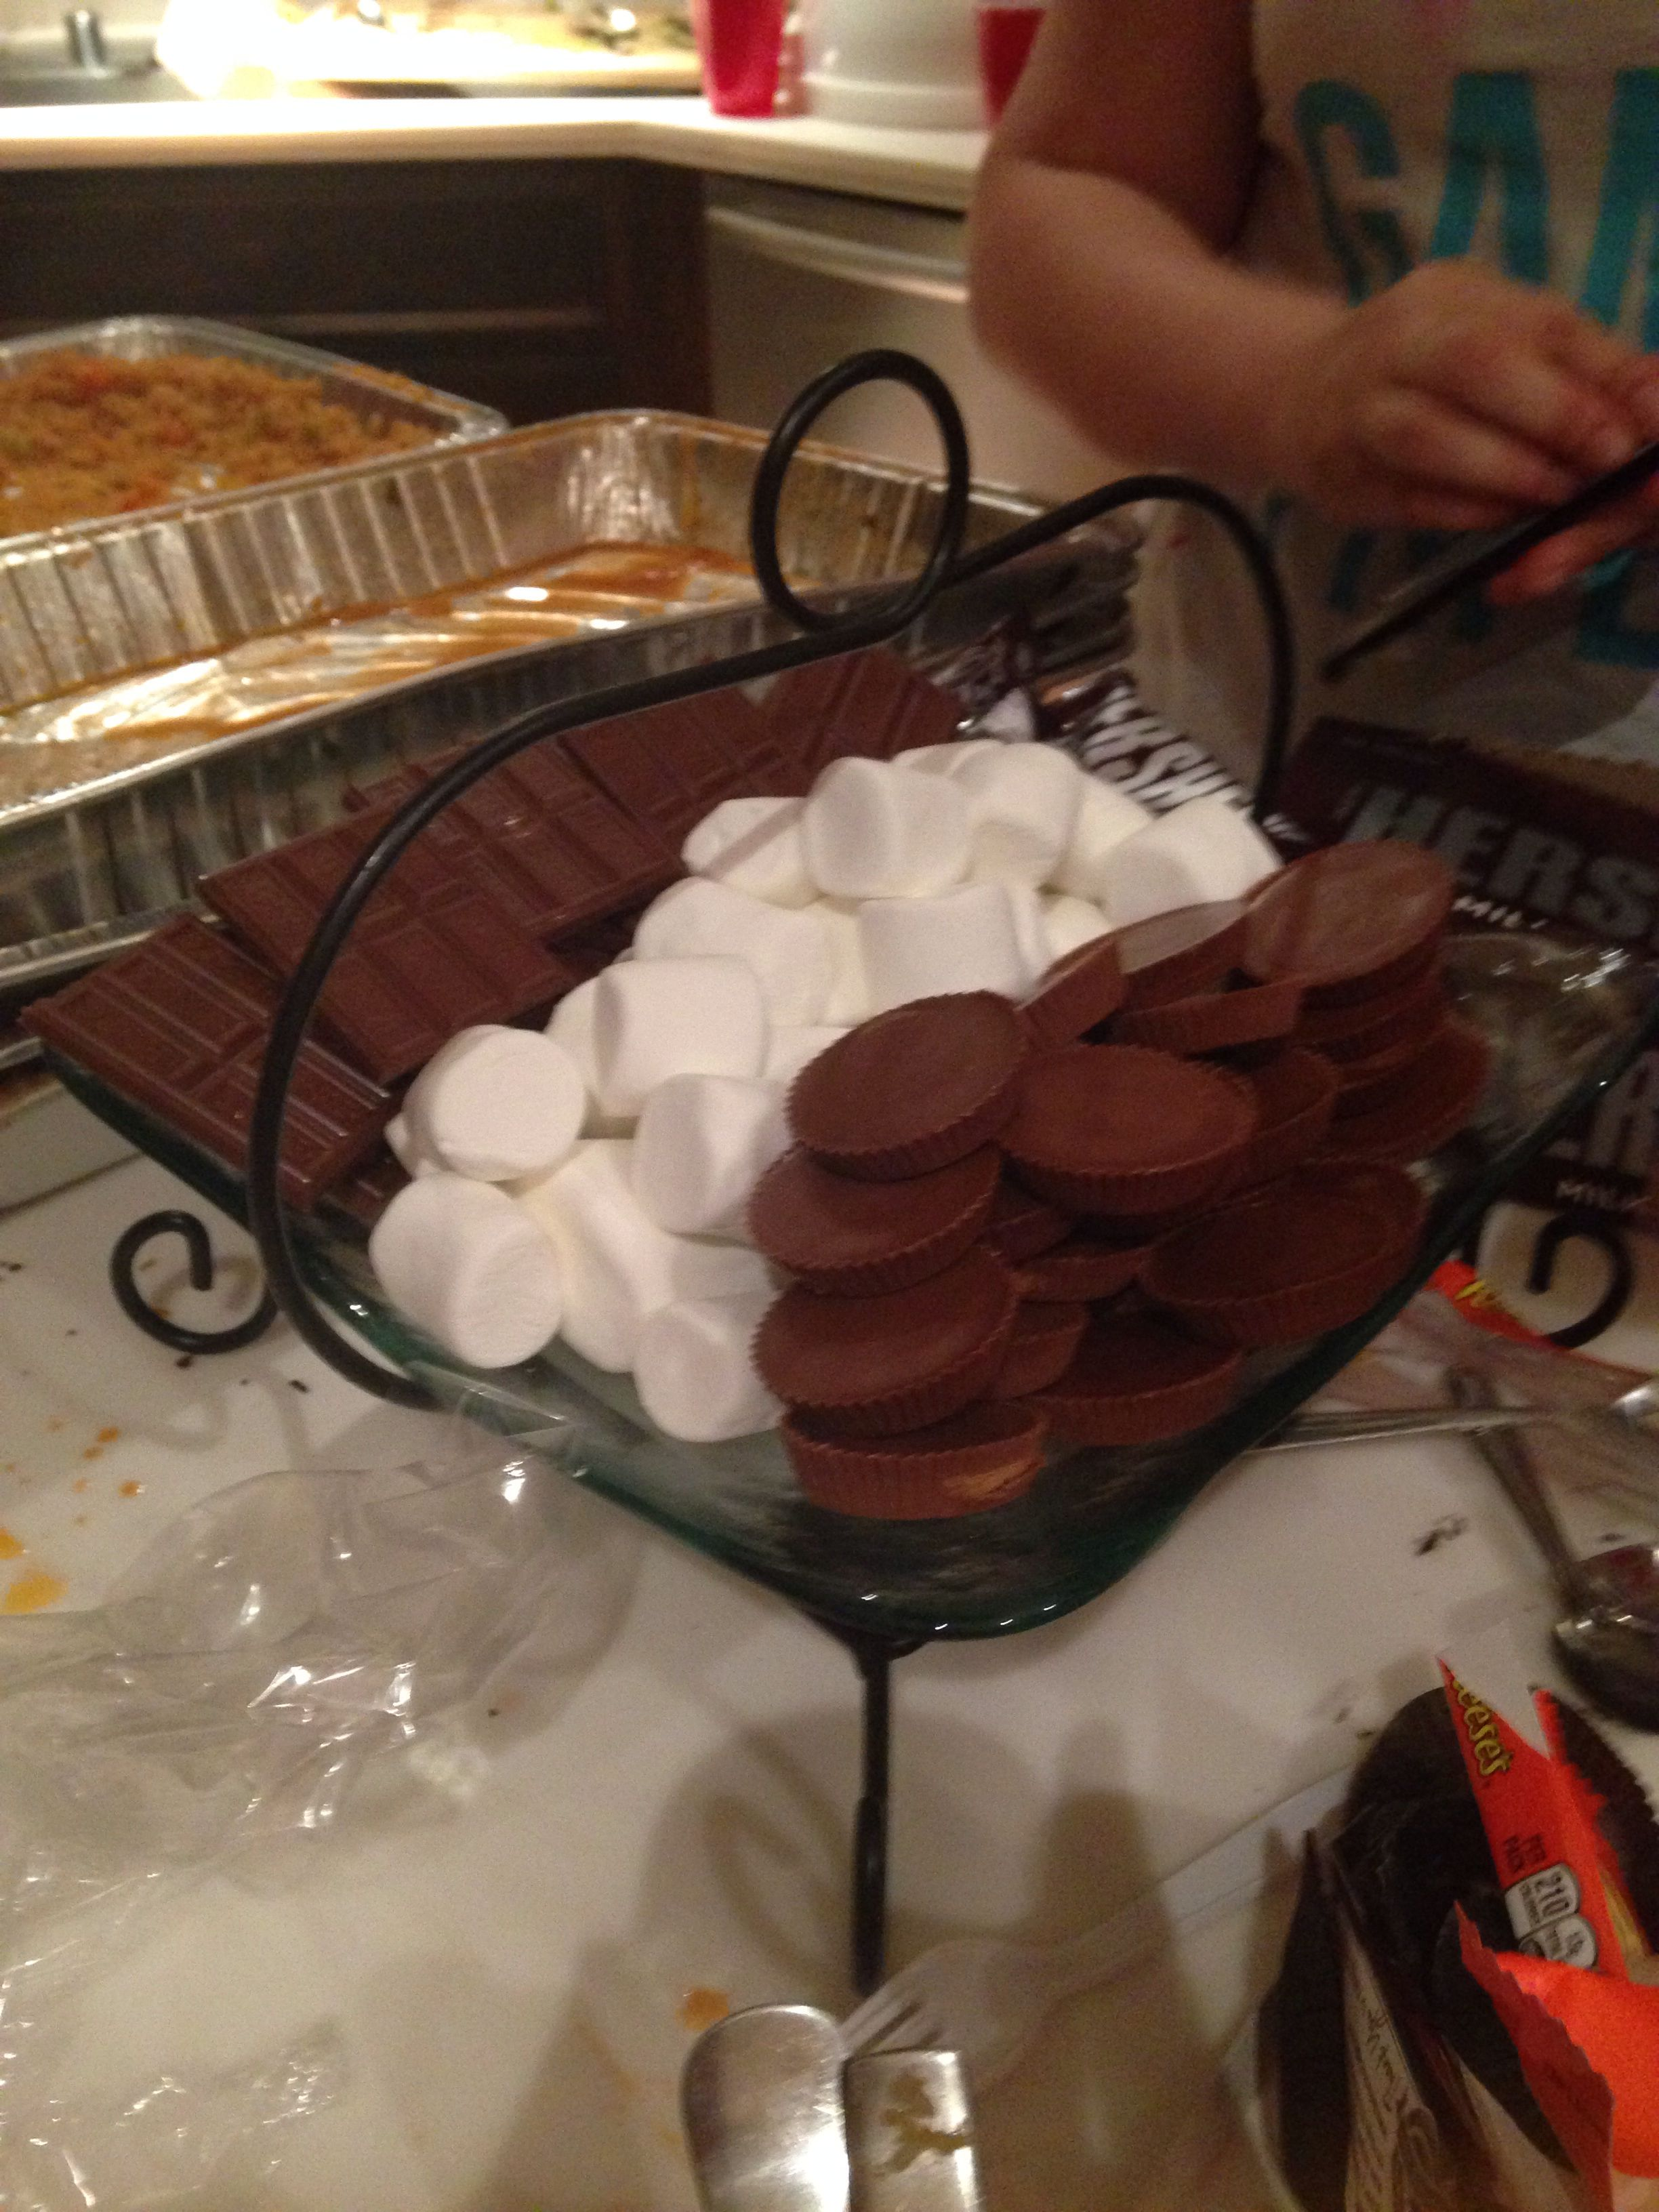 S'mores with Reese's! Yum yum yum!